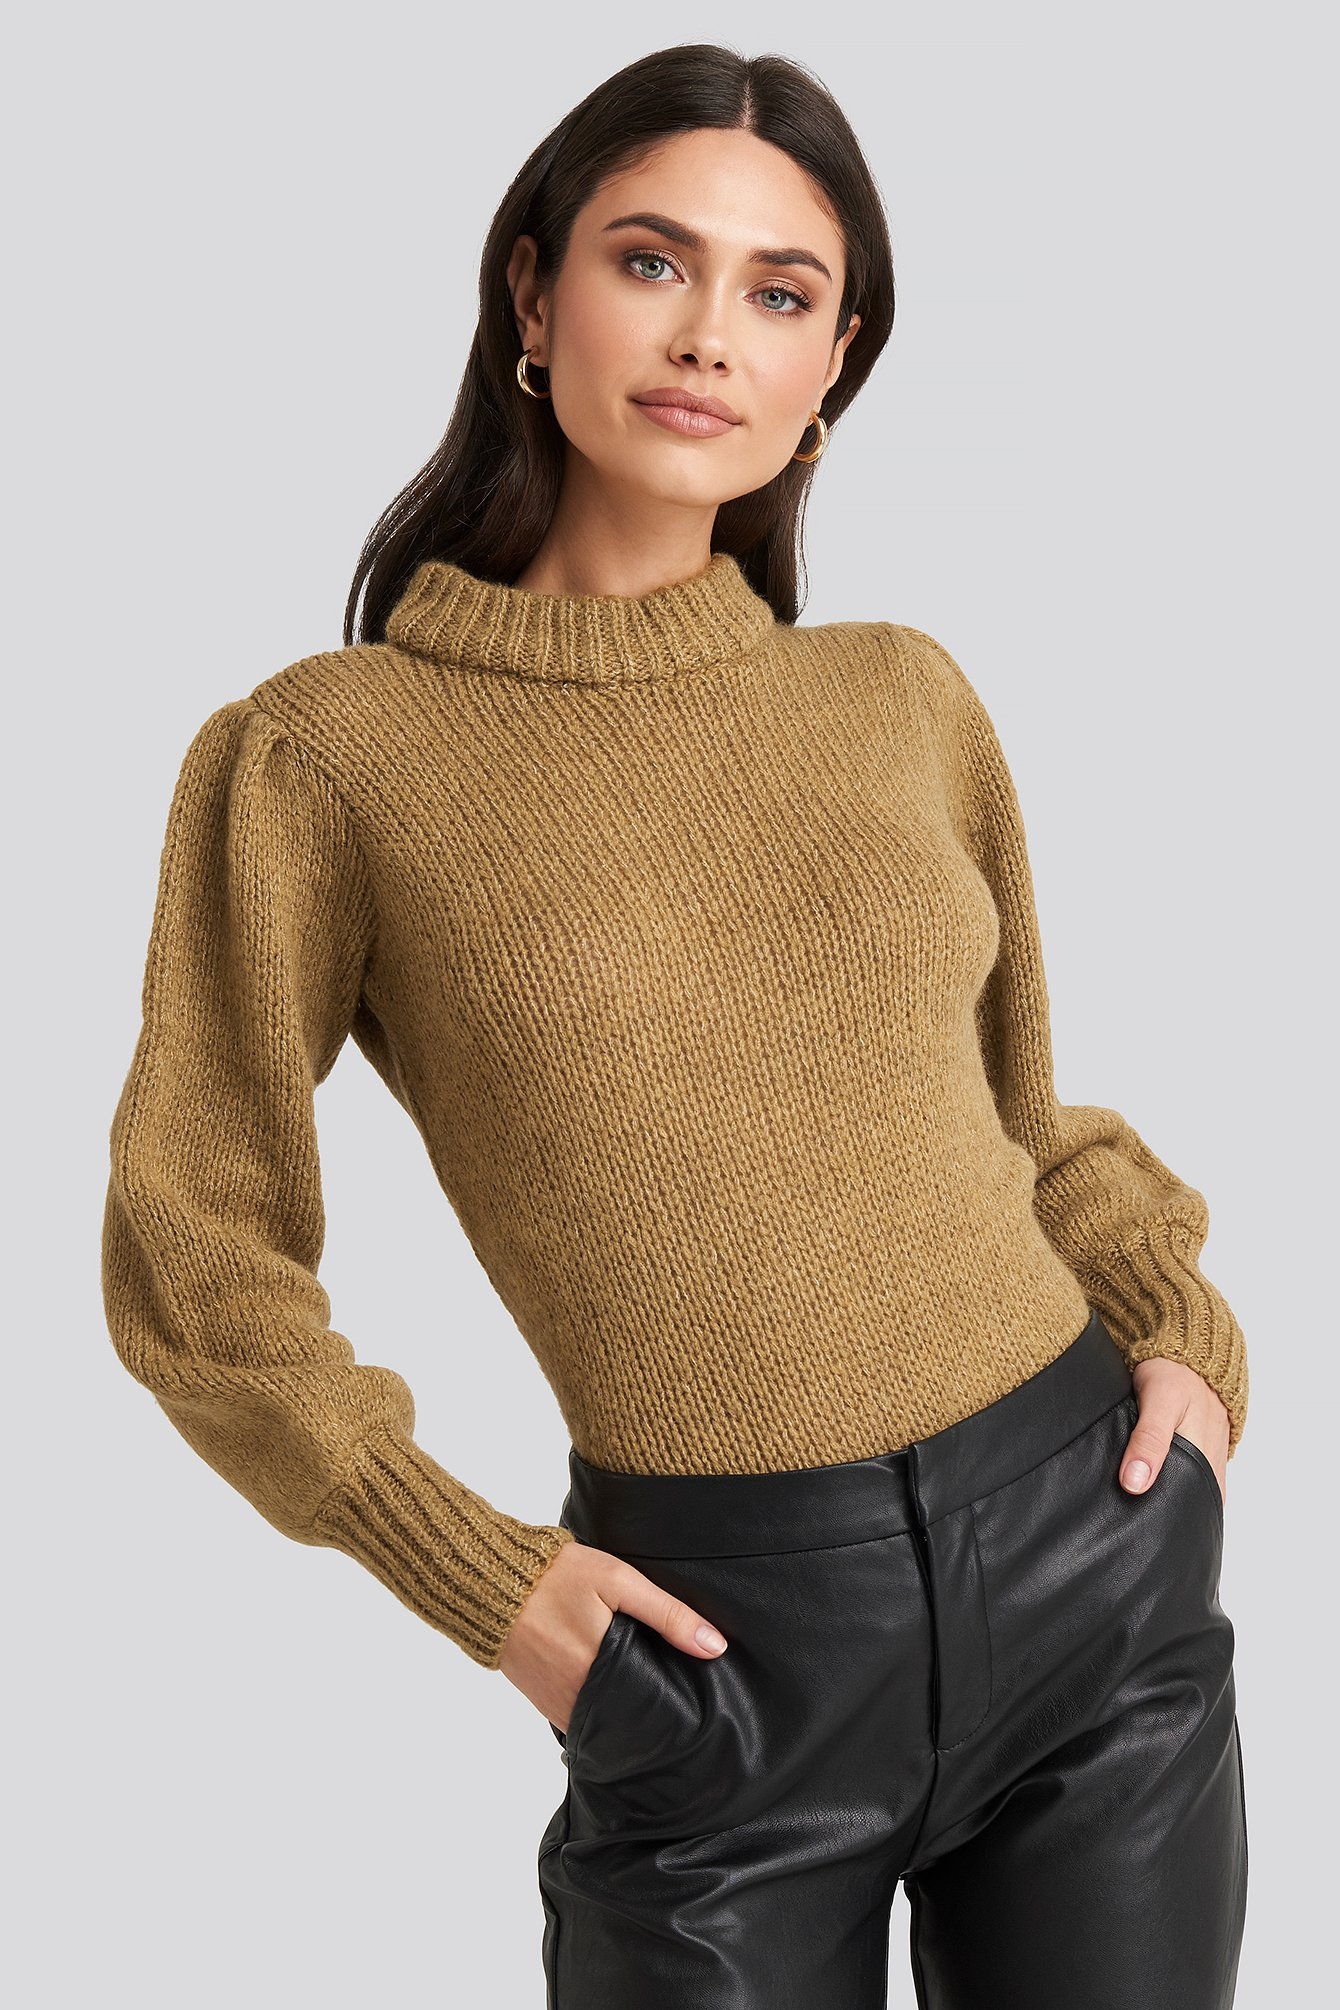 NA-KD Puff Sleeve Wide Neck Knitted Sweater - Beige | Bekleidung > Sweatshirts & -jacken > Sweatshirts | NA-KD